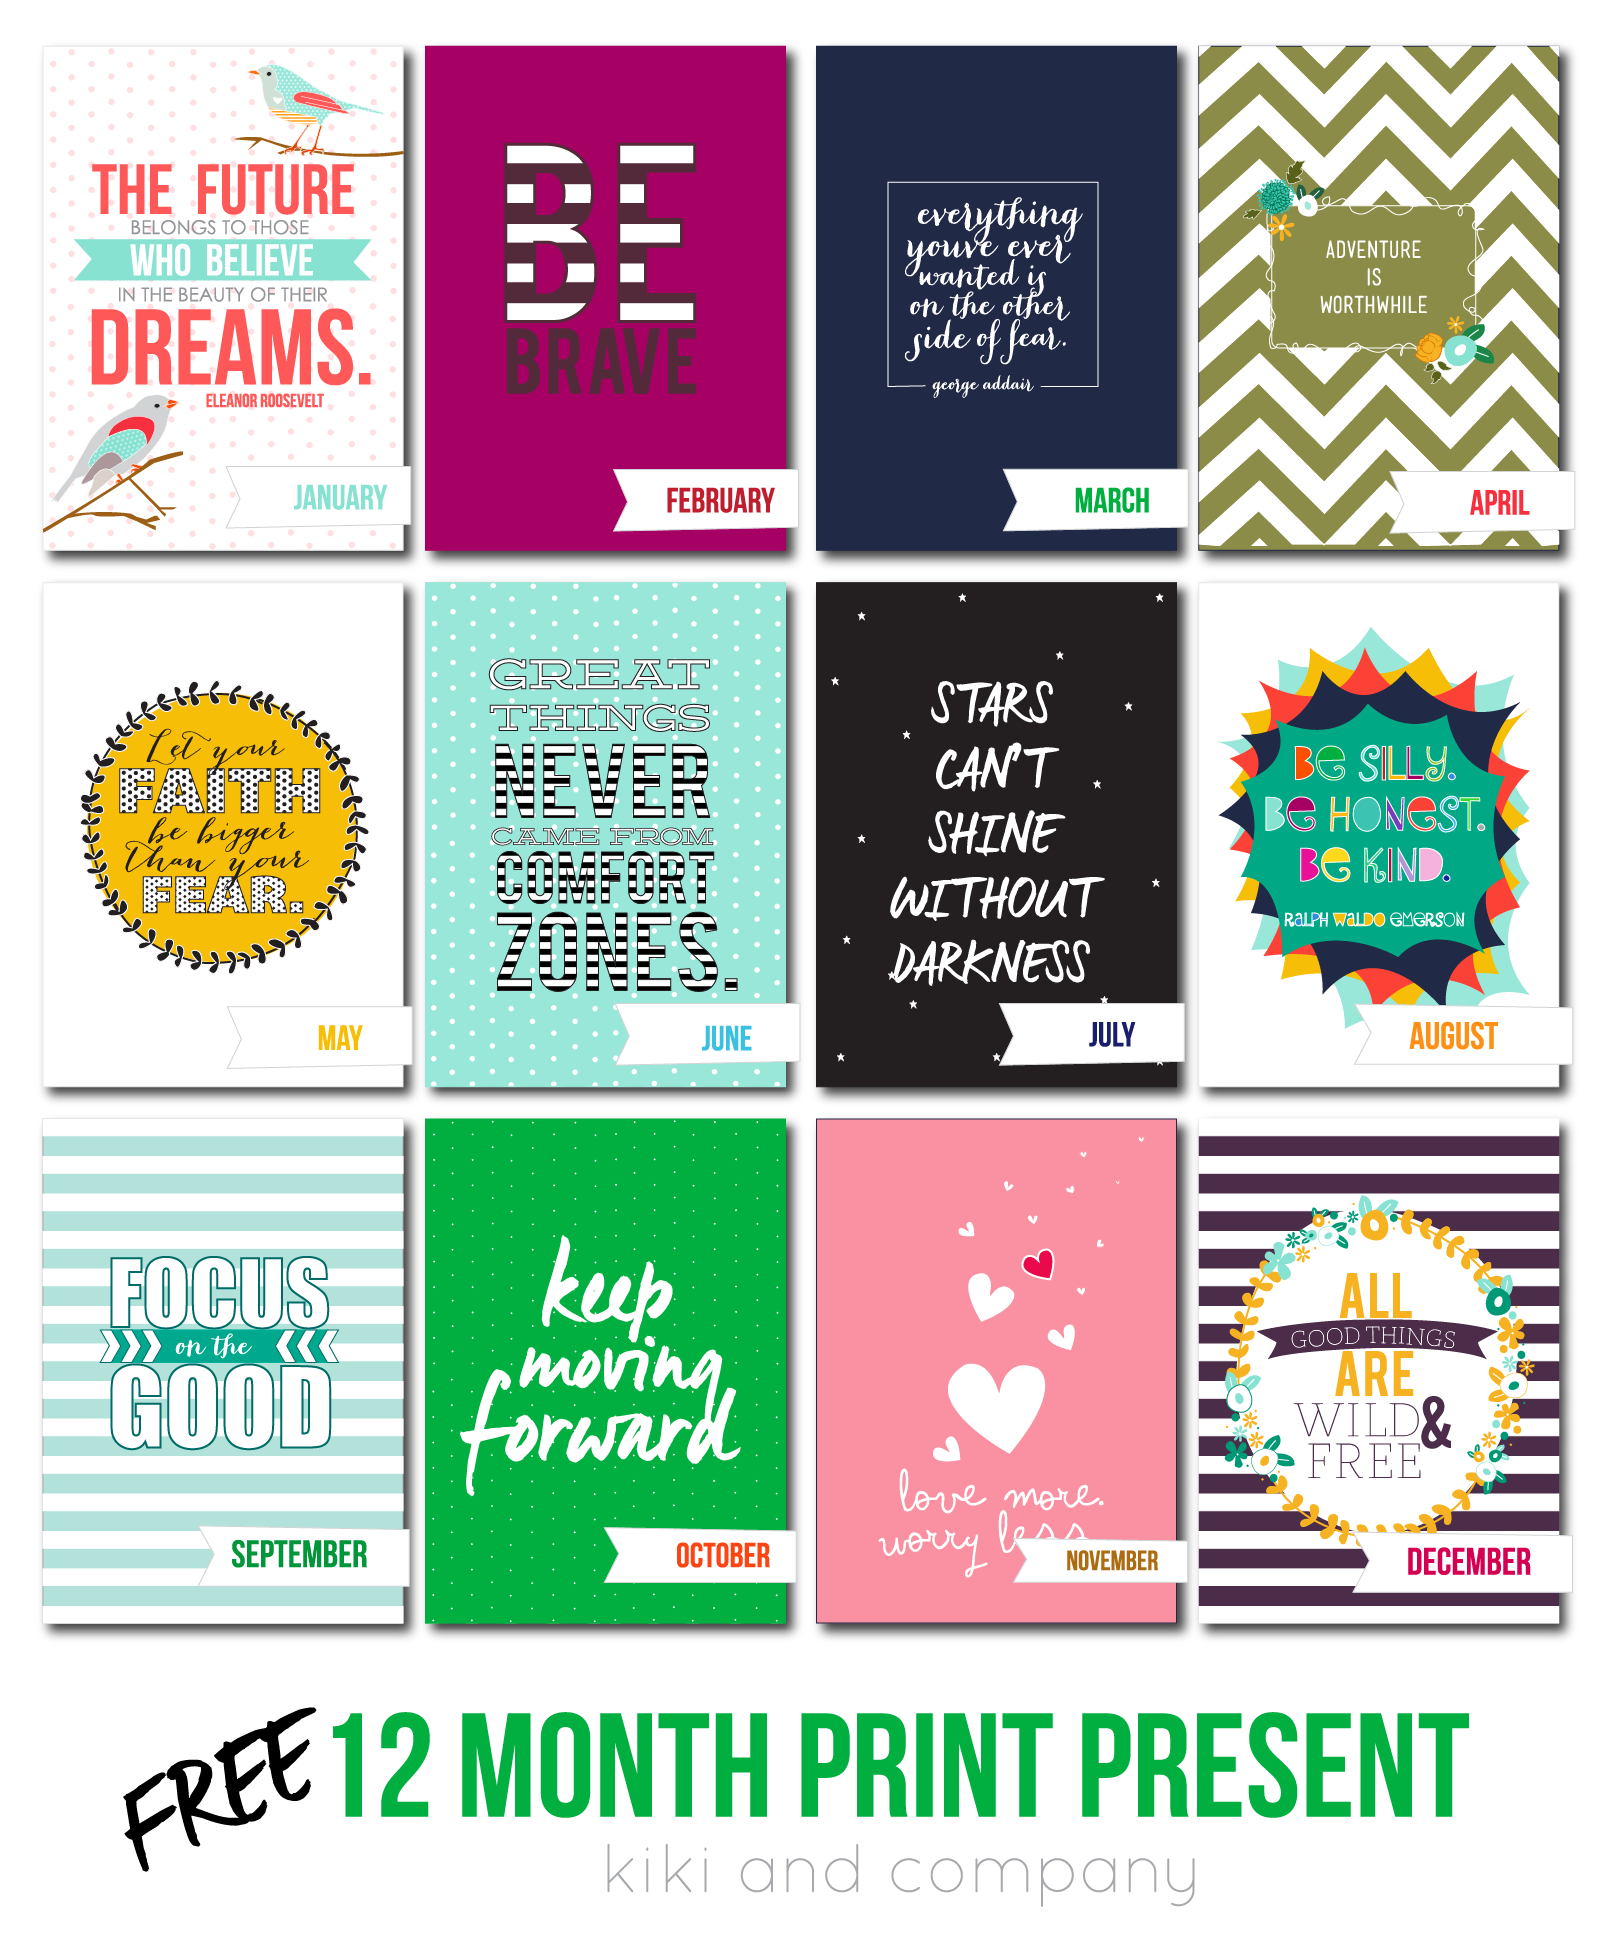 free print birthday cards - Jcmanagement.co